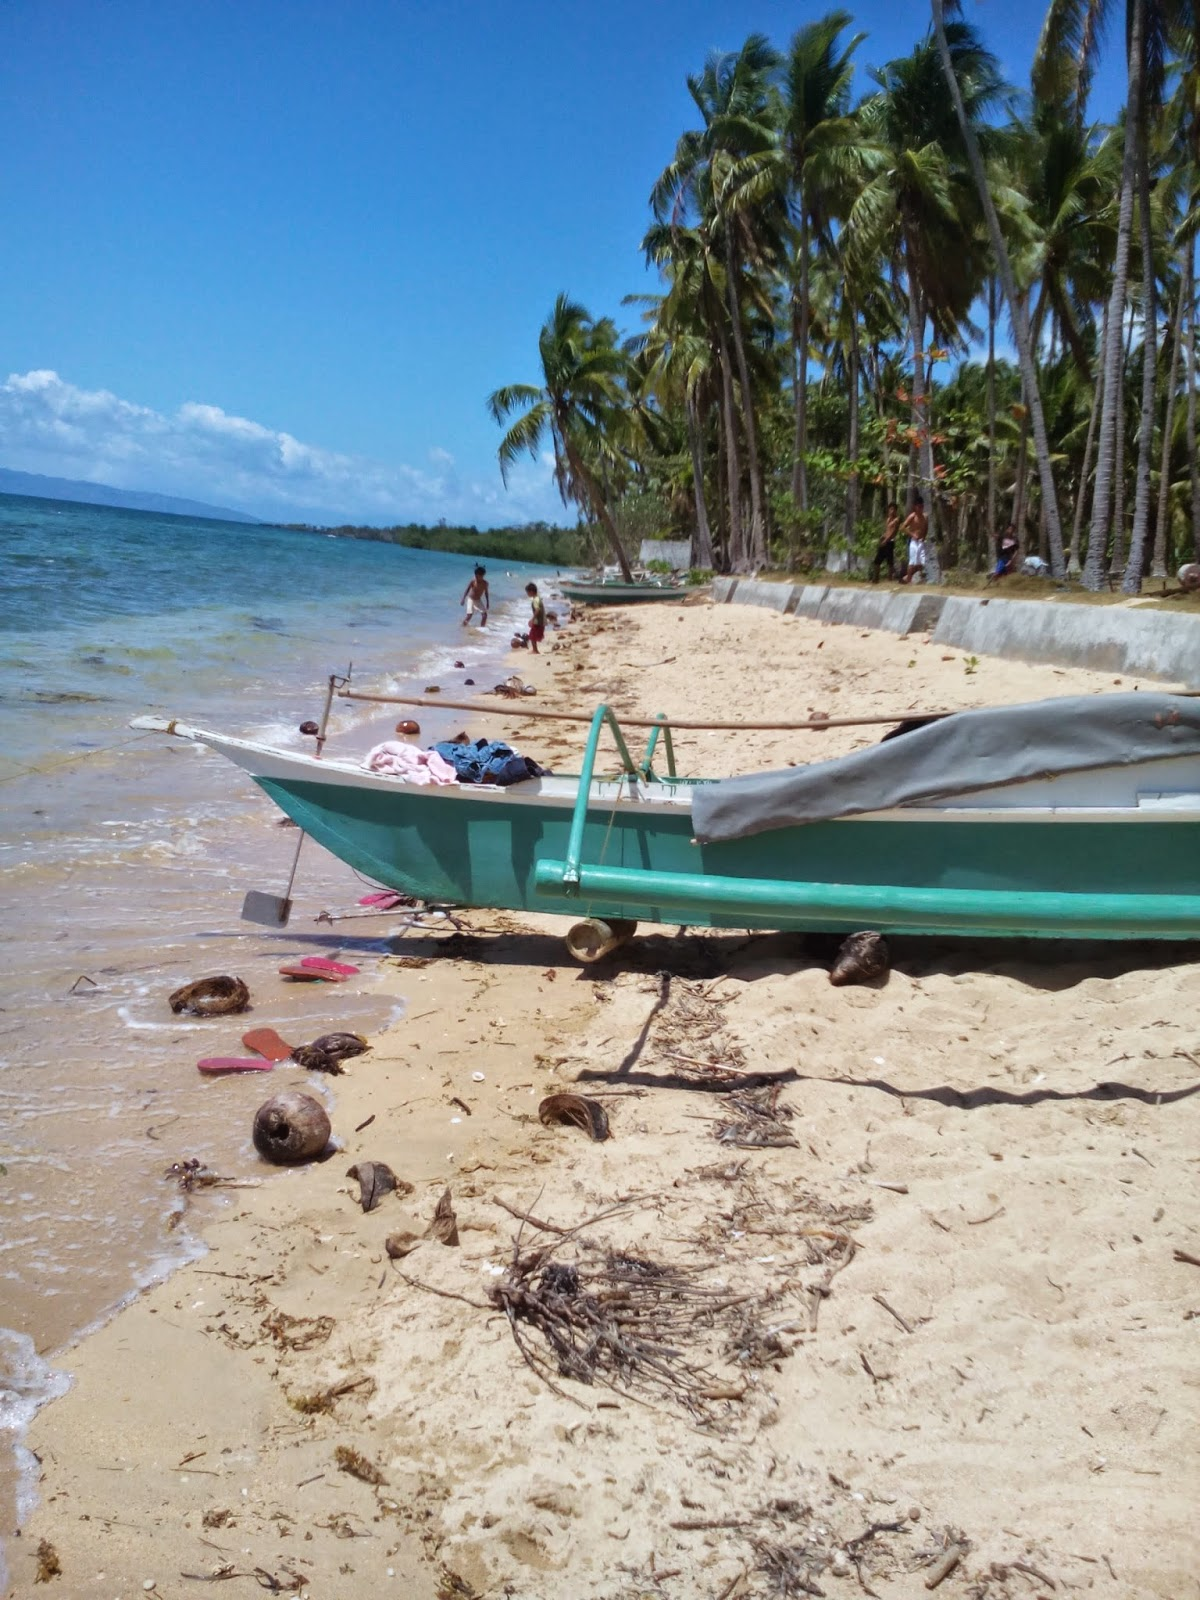 Mactang Historical Beach, Poro, Camotes, Cebu